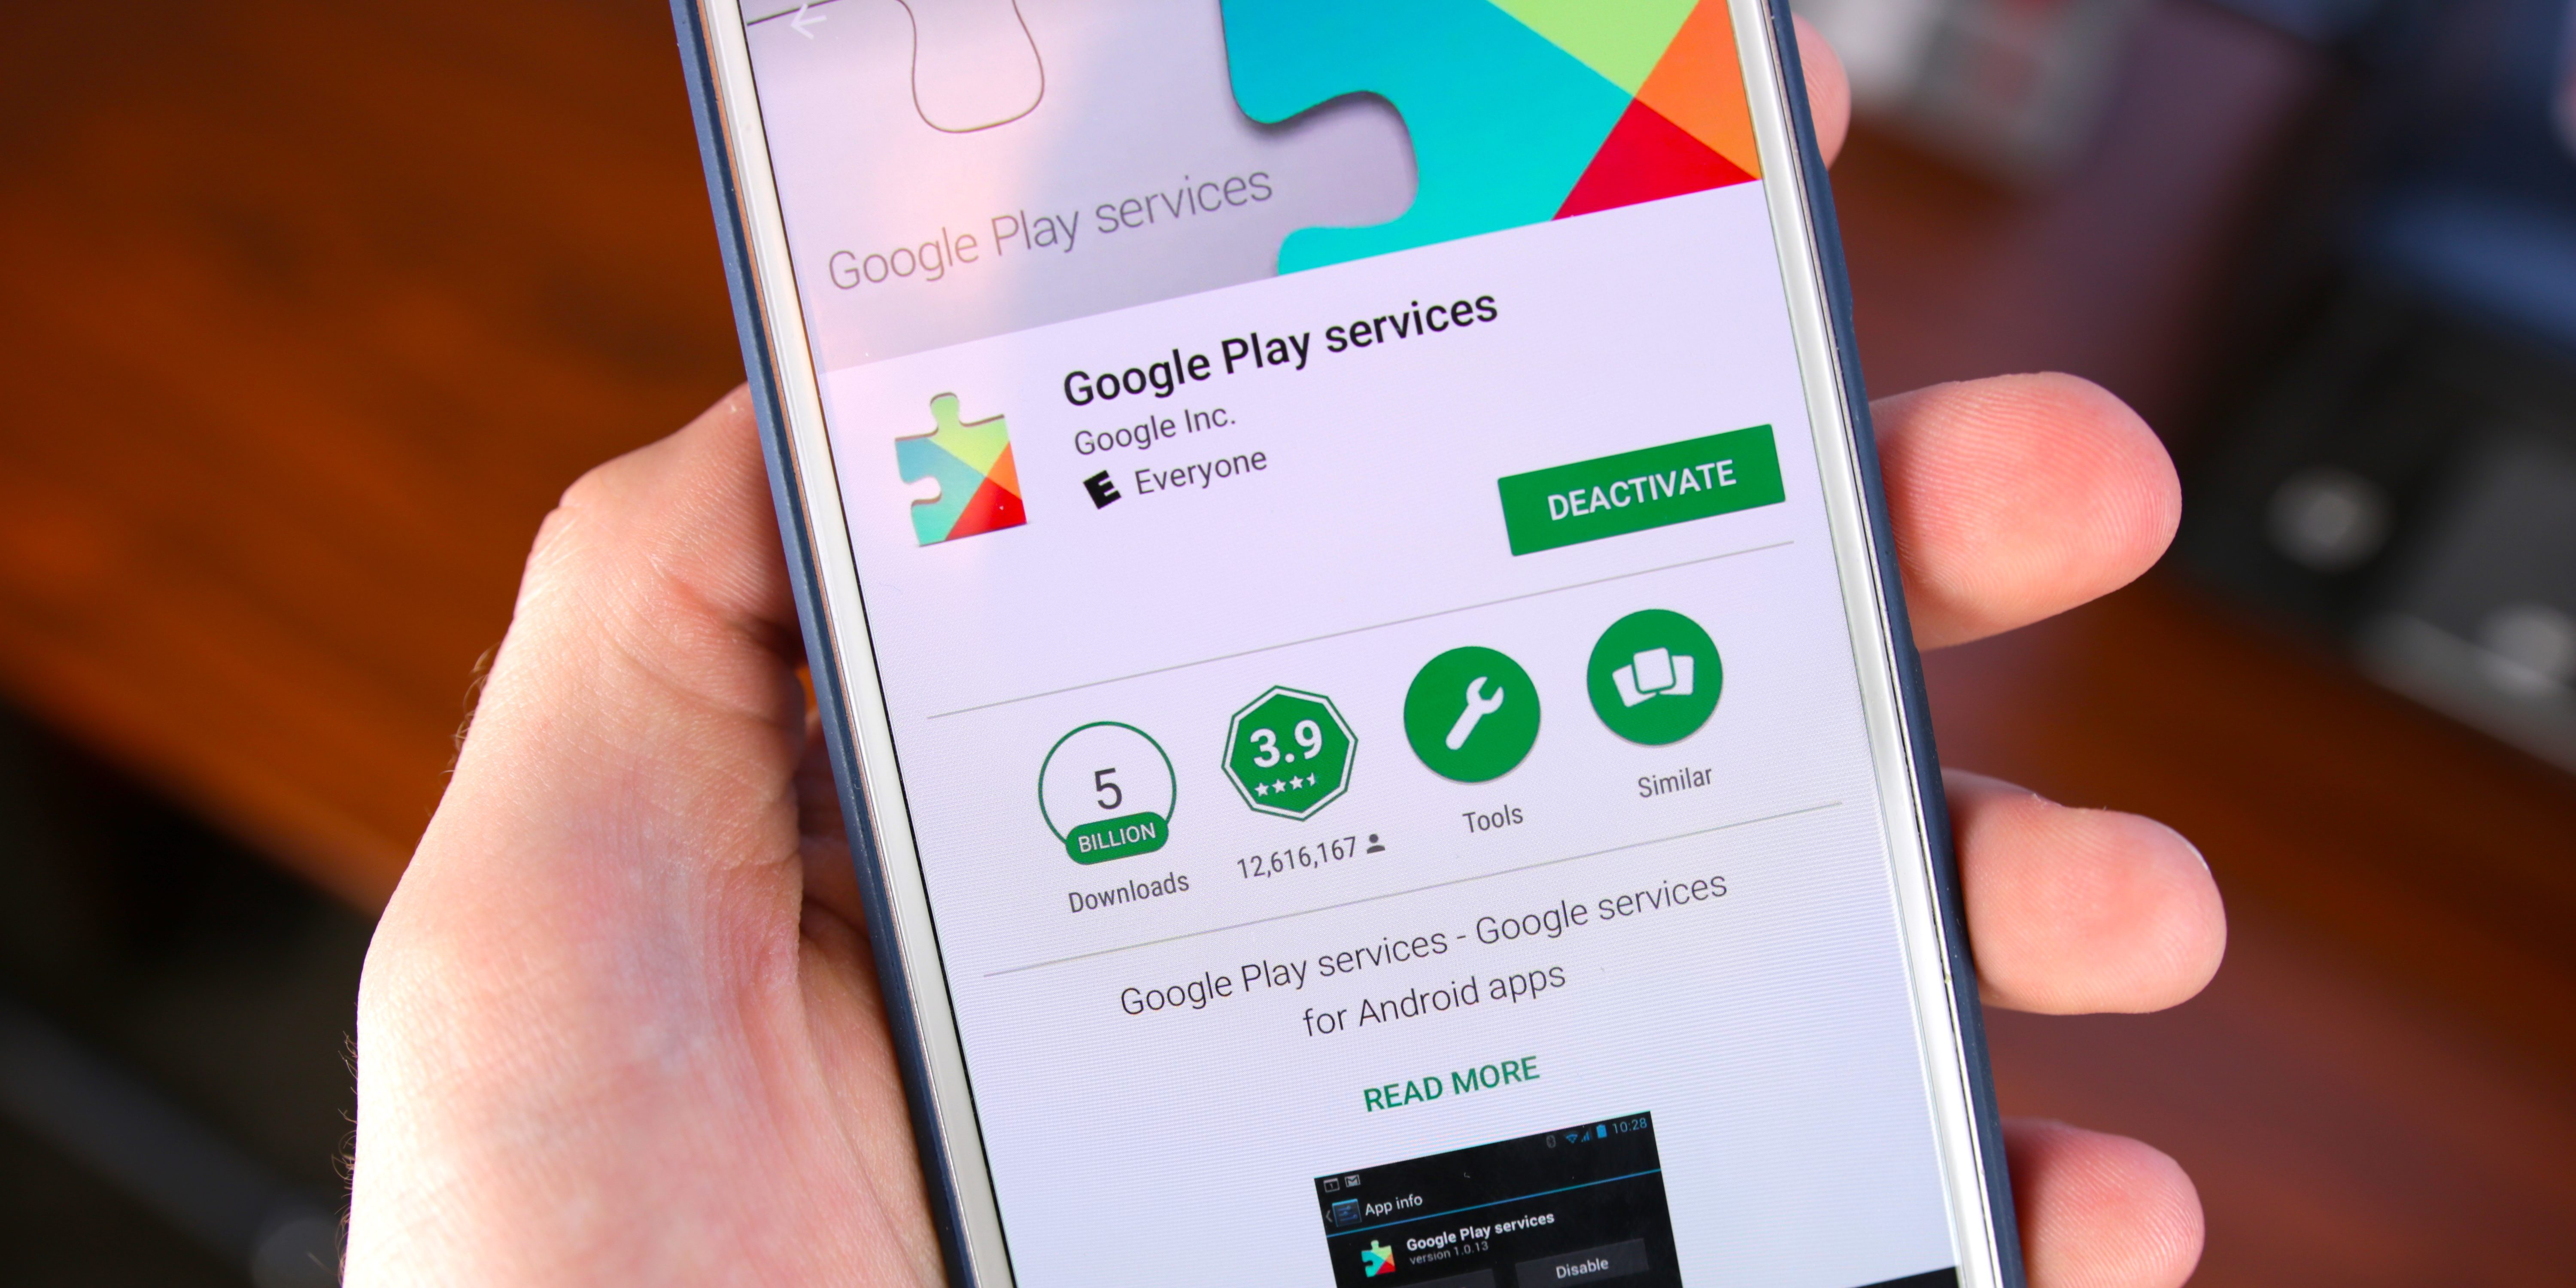 7 full and safe alternatives to Google Play